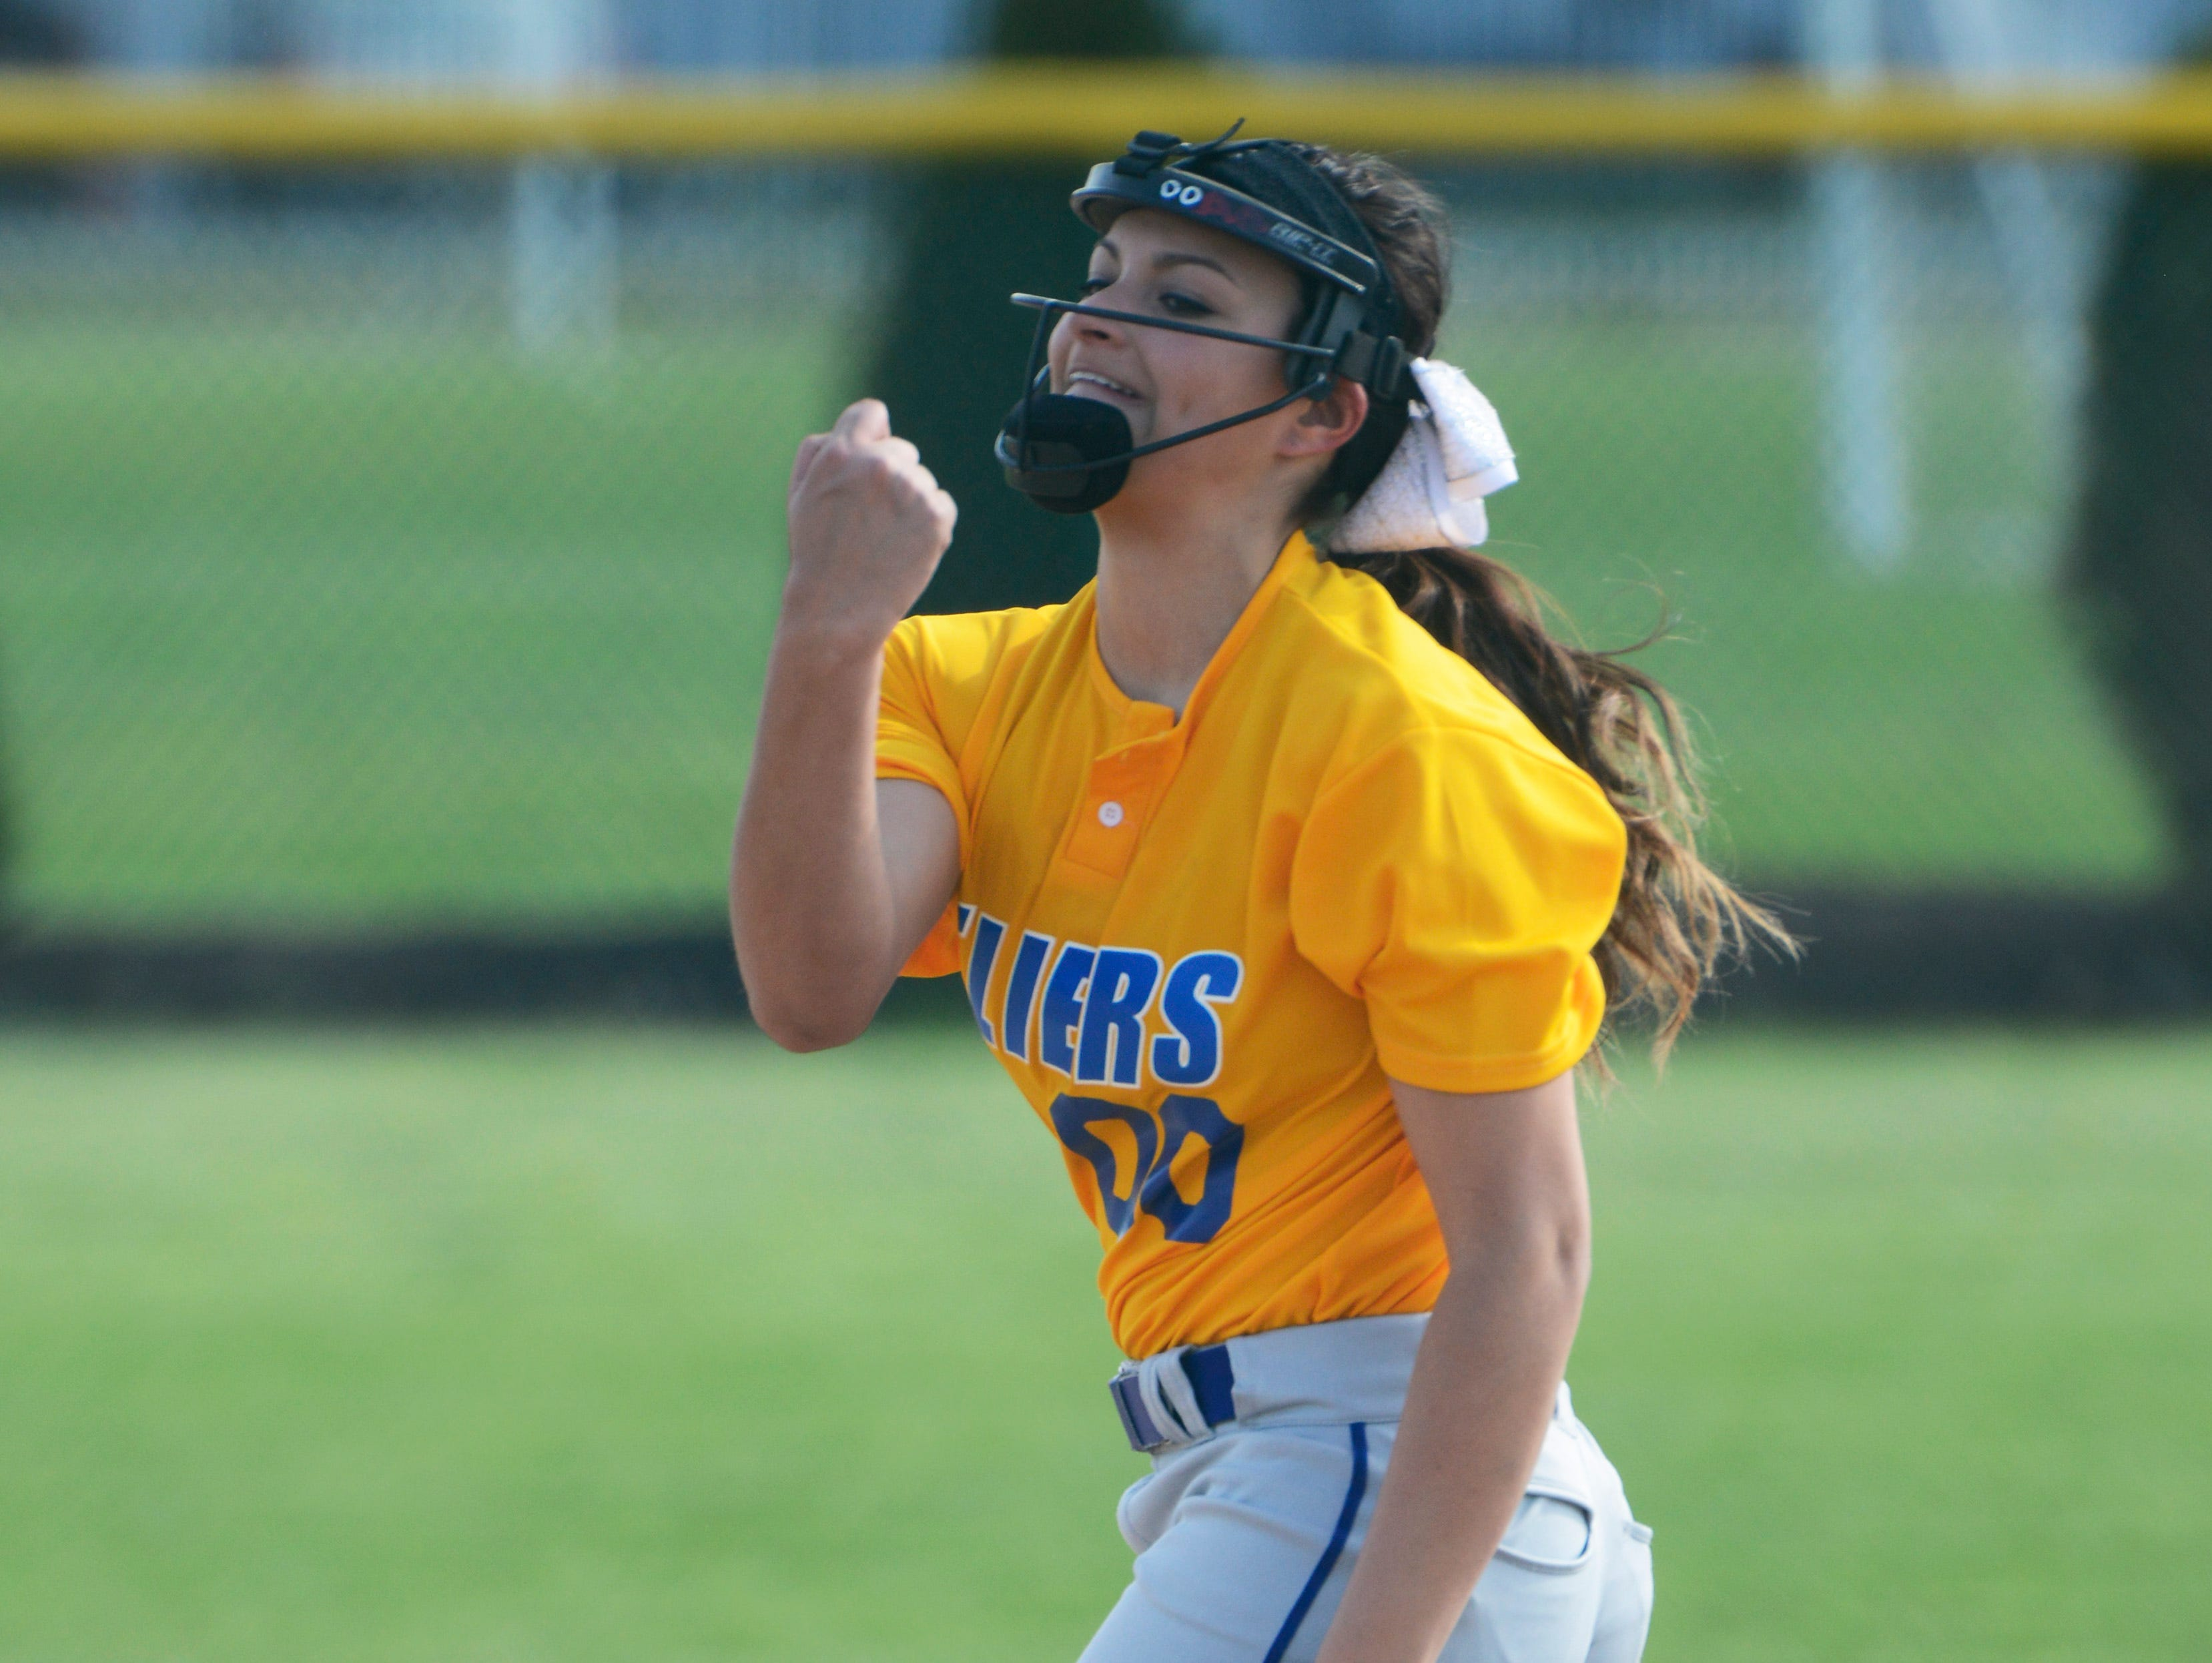 Clyde pitcher Adriana Sanchez releases a pitch against Margaretta in a game Wednesday afternoon.